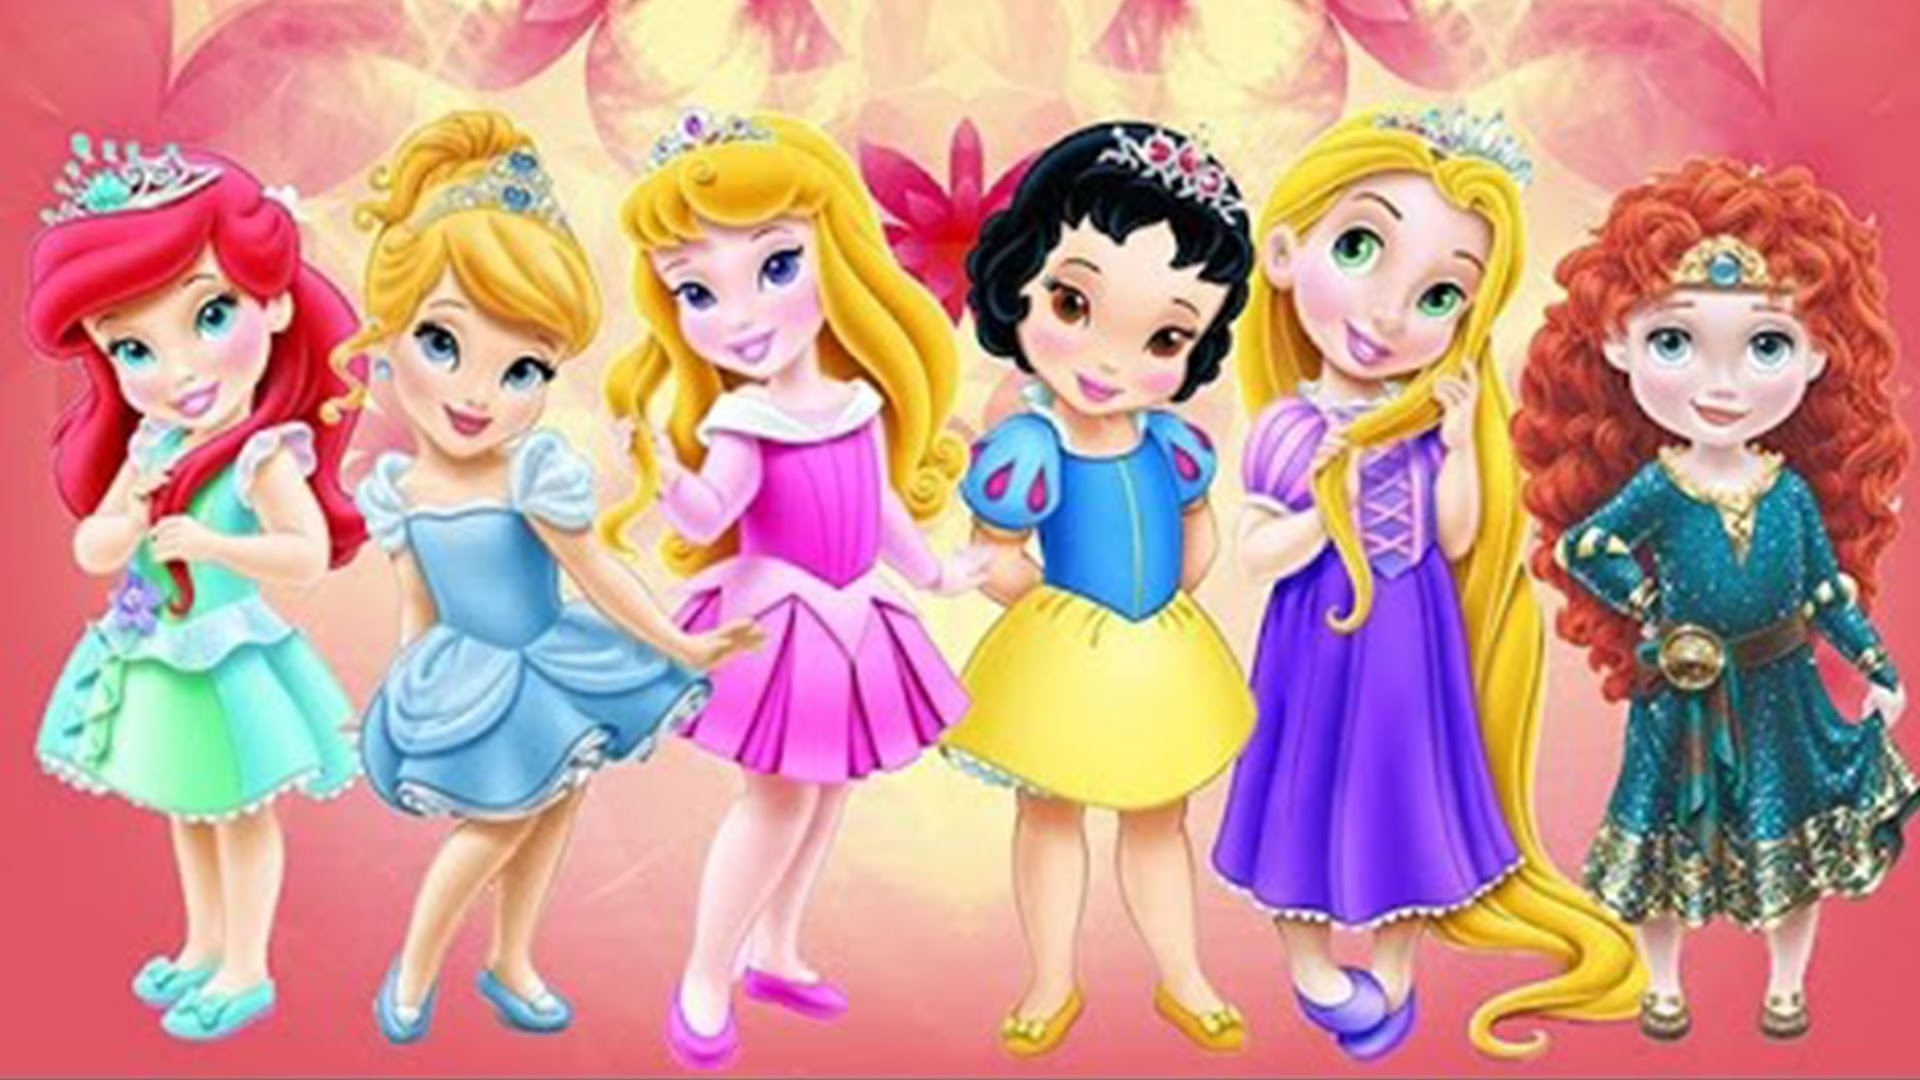 Baby Disney Characters Wallpaper 59 Images